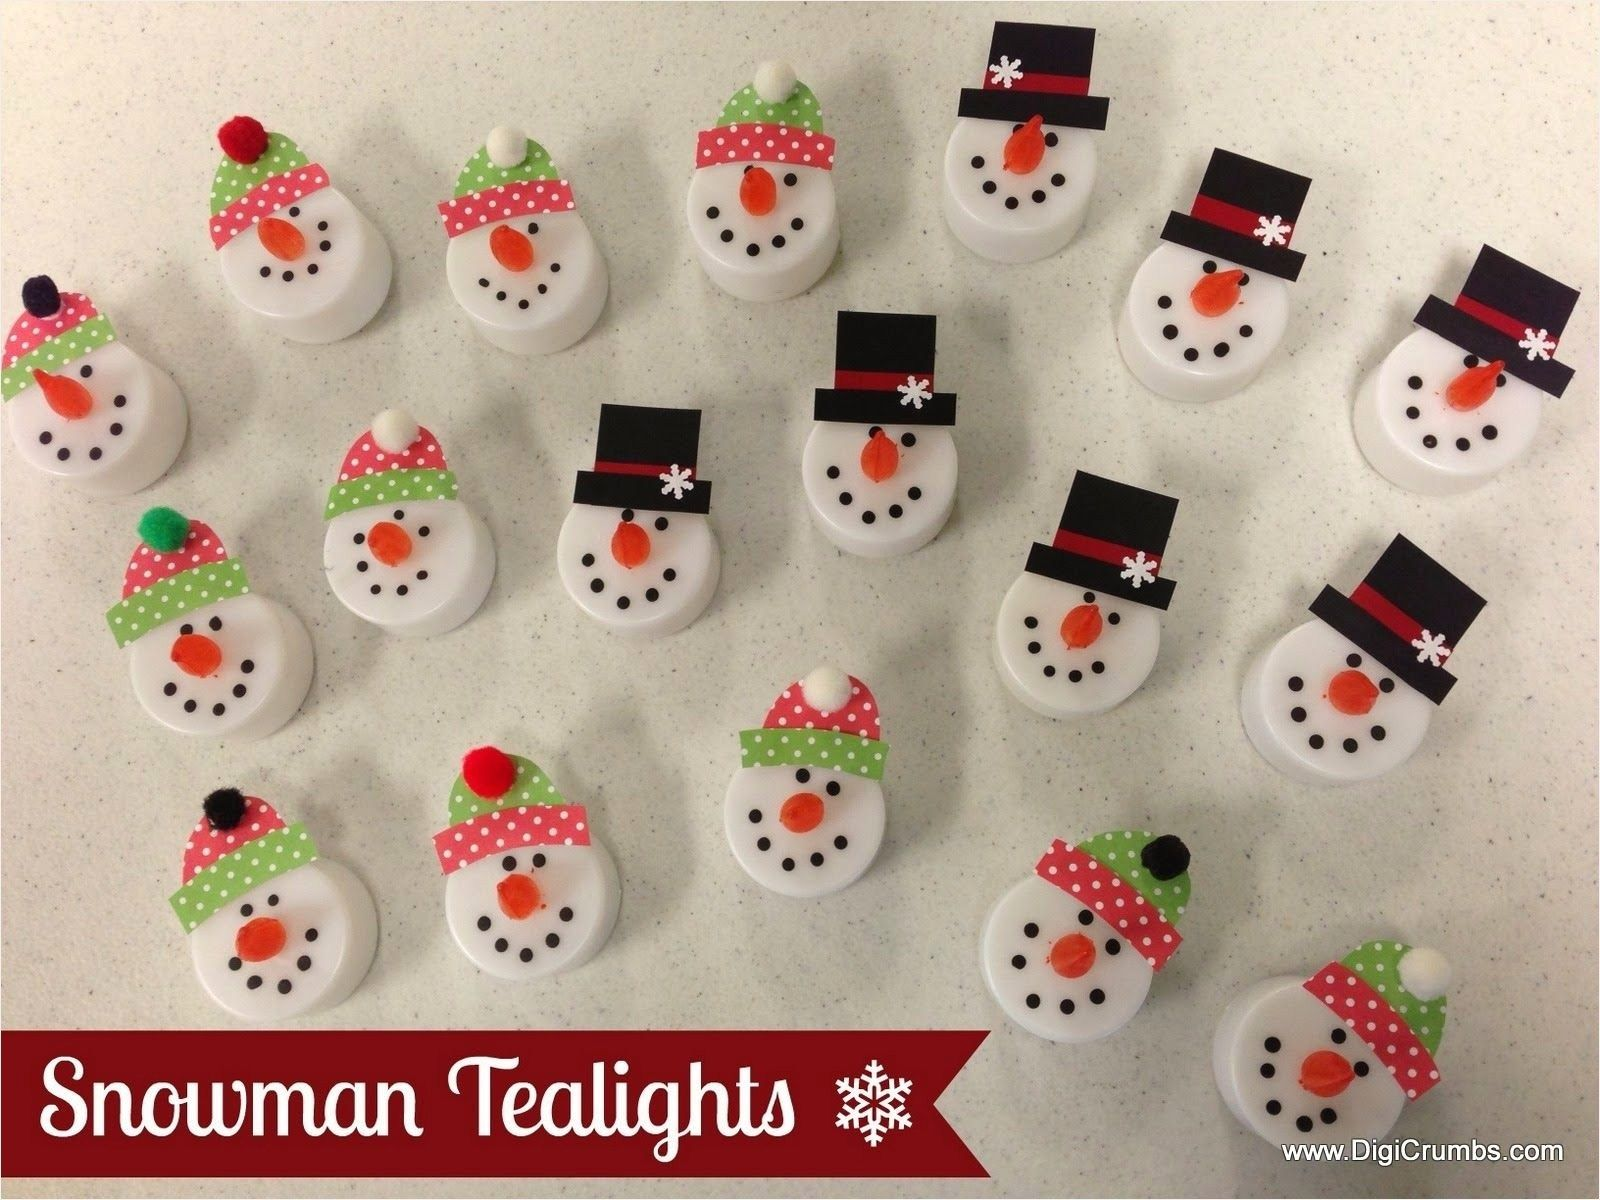 41 Beautiful Quick Christmas Crafts to Make - DecoRequired #christmascraftstosell